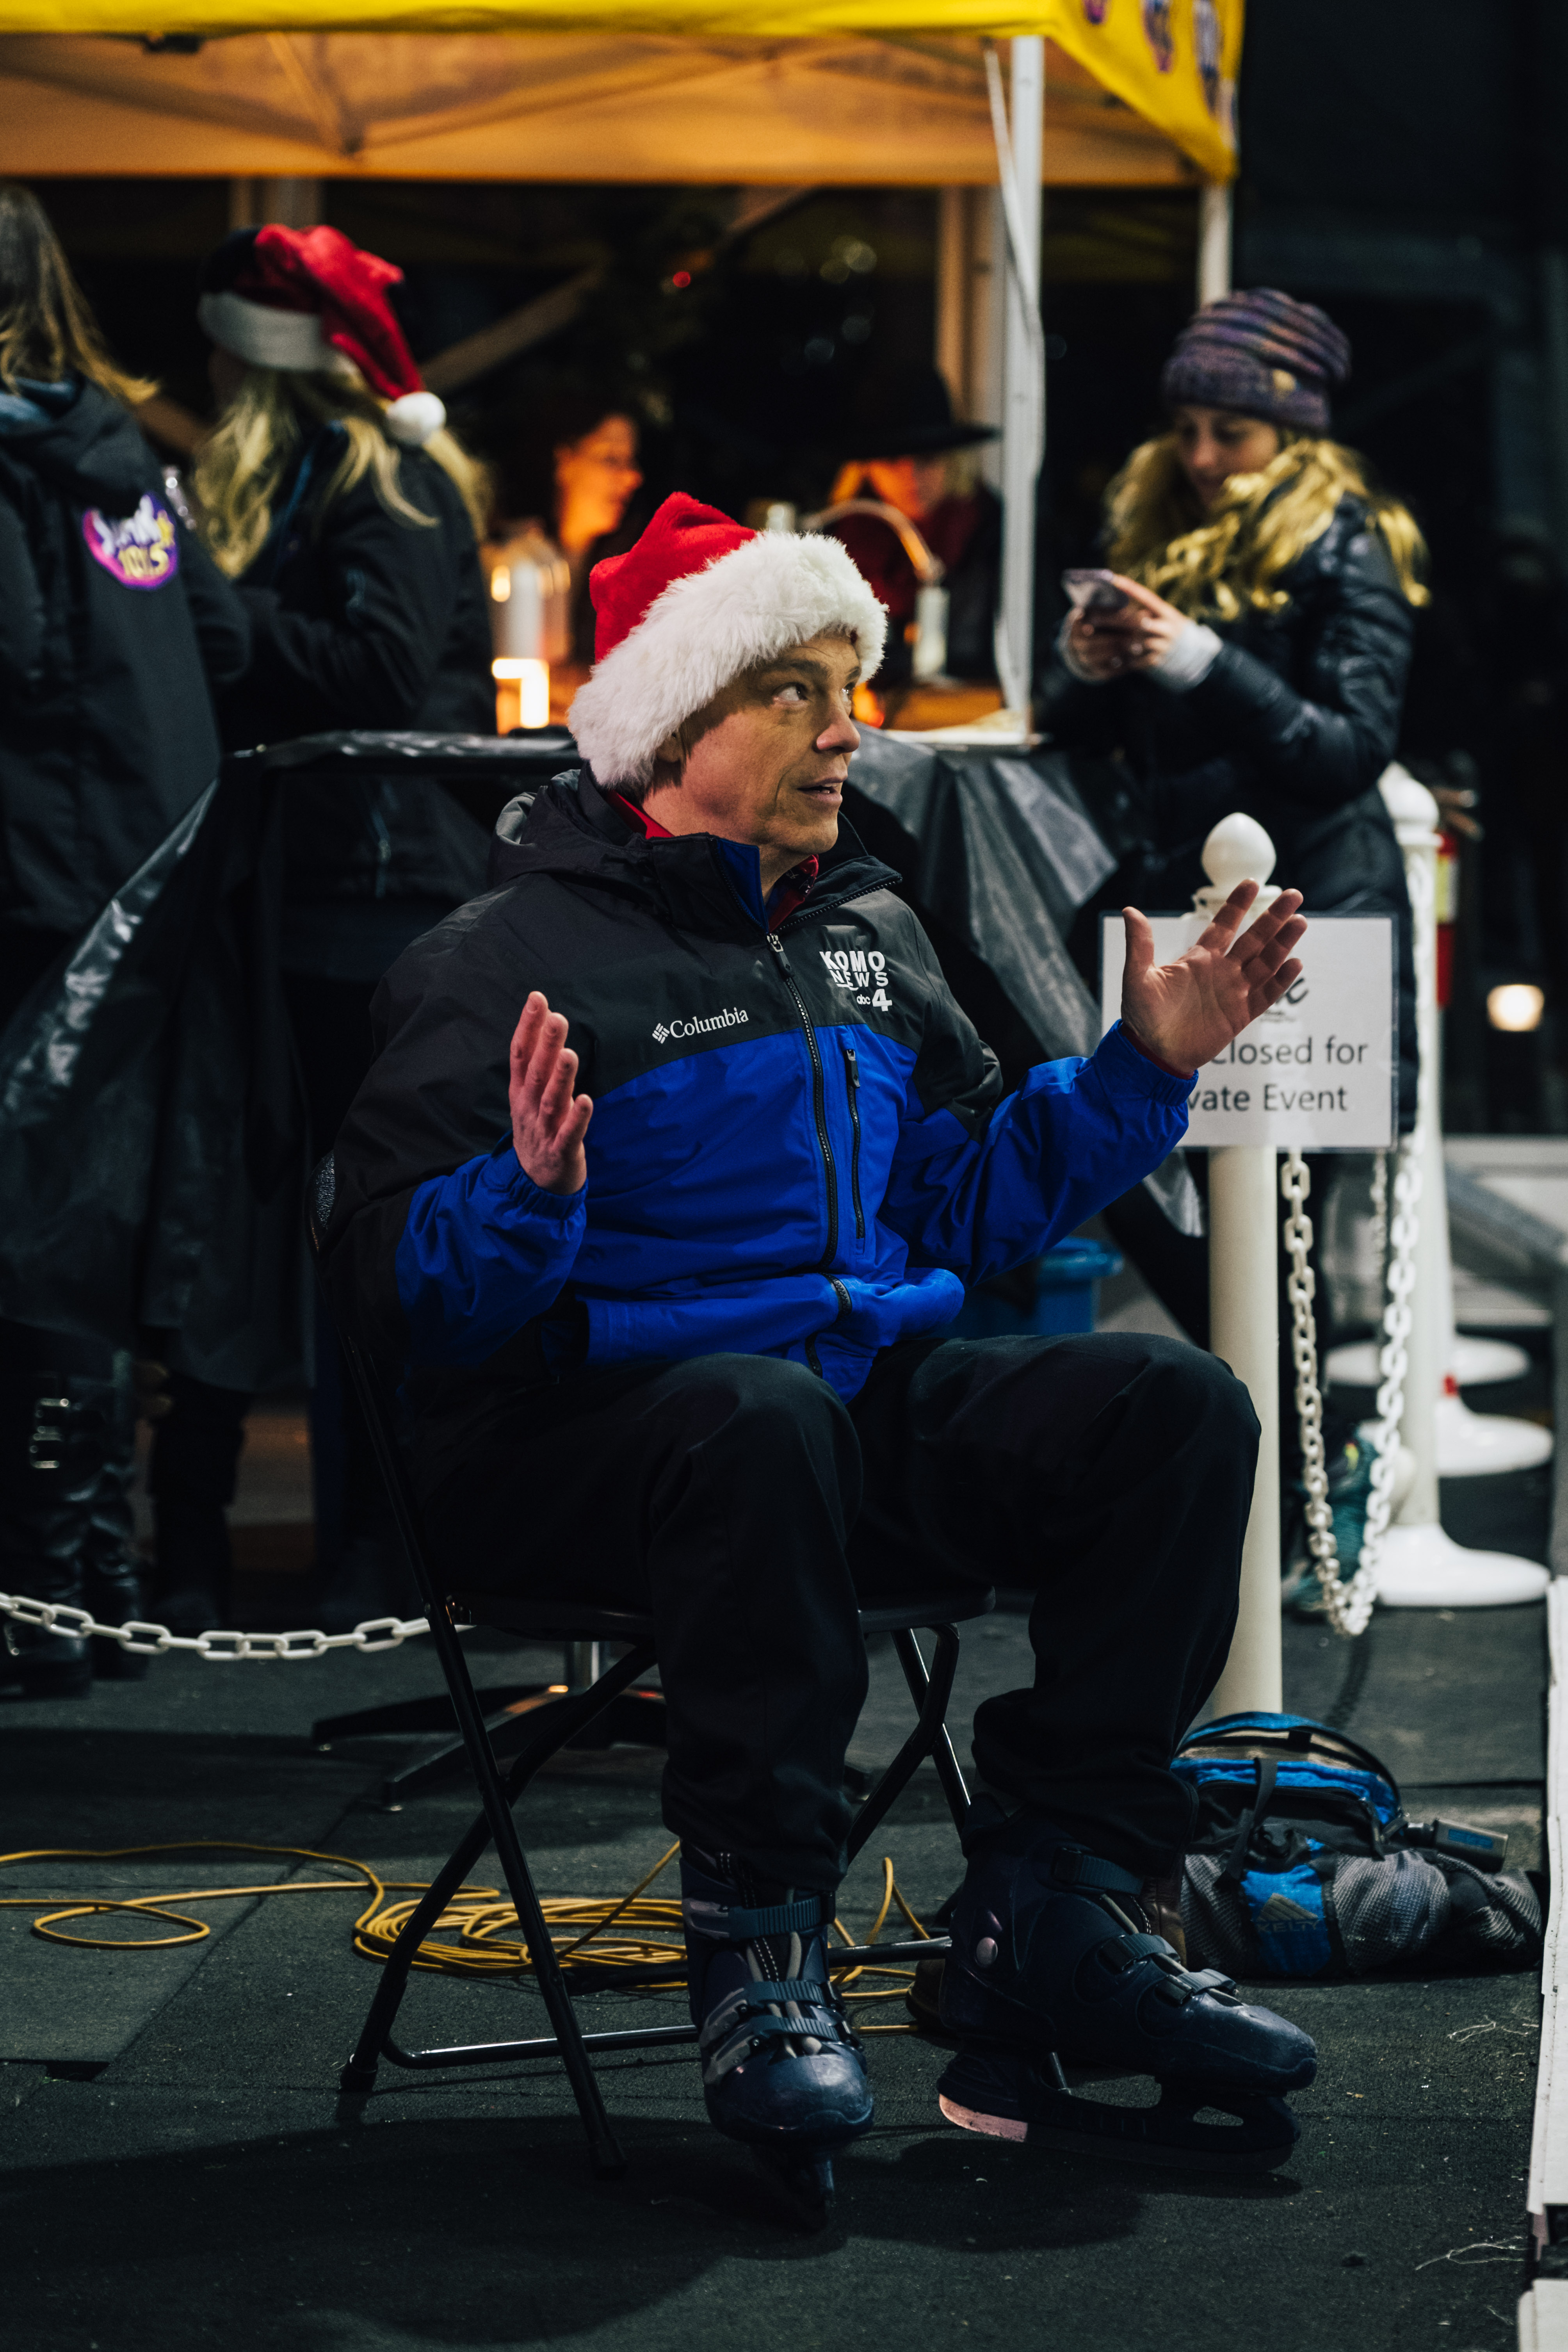 And just like that, STAR 101.5 radio is officially SANTA FM for the season! The flip happened Nov. 30 at the Ice Skating Arena at Bellevue Downtown Park, and if you tune in now through Christmas Day! (Image: Ryan McBoyle / Seattle Refined){ }